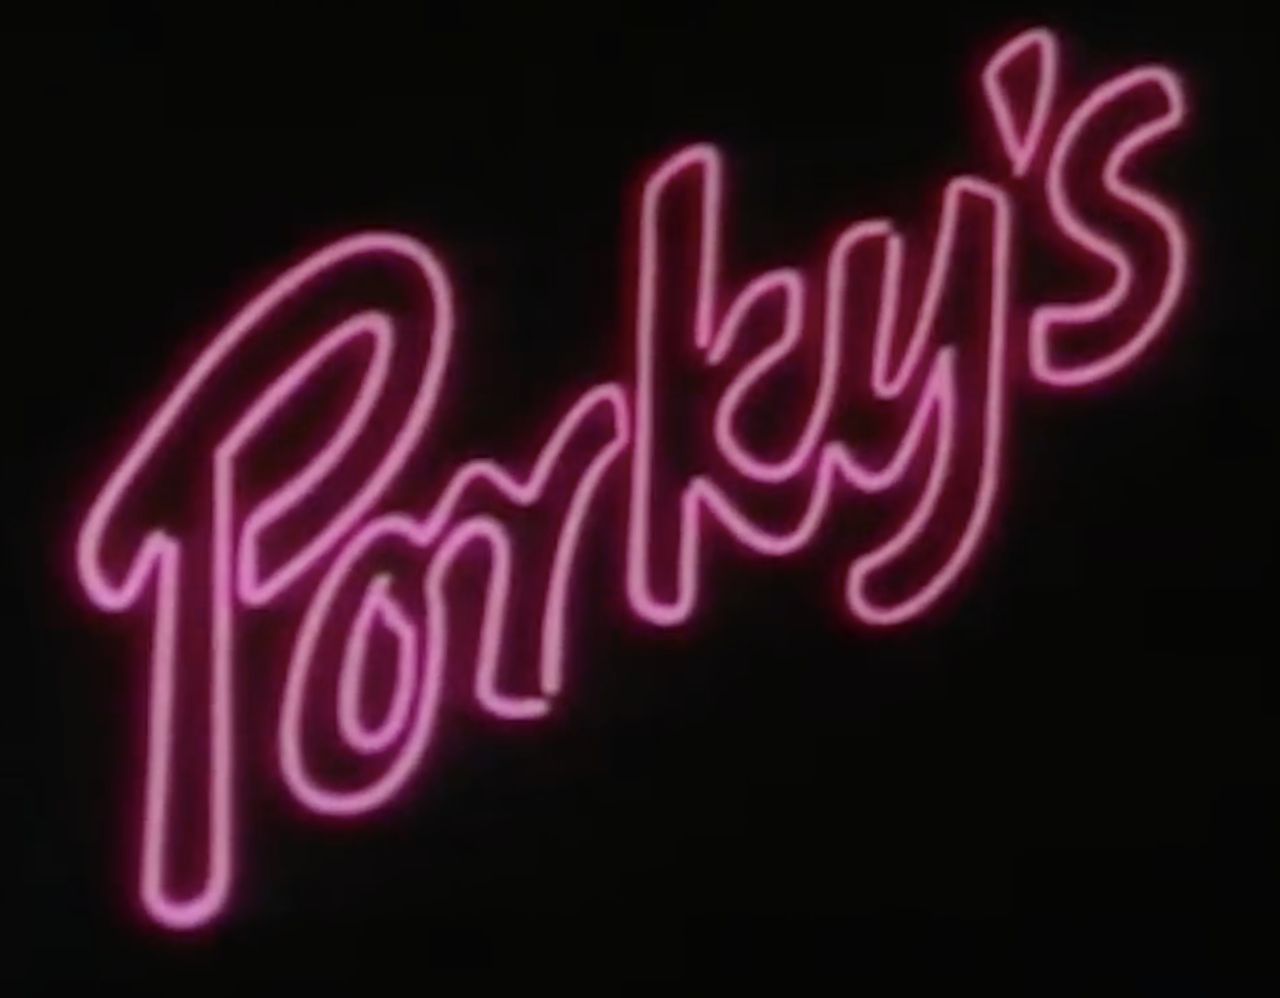 Porky's (Review)